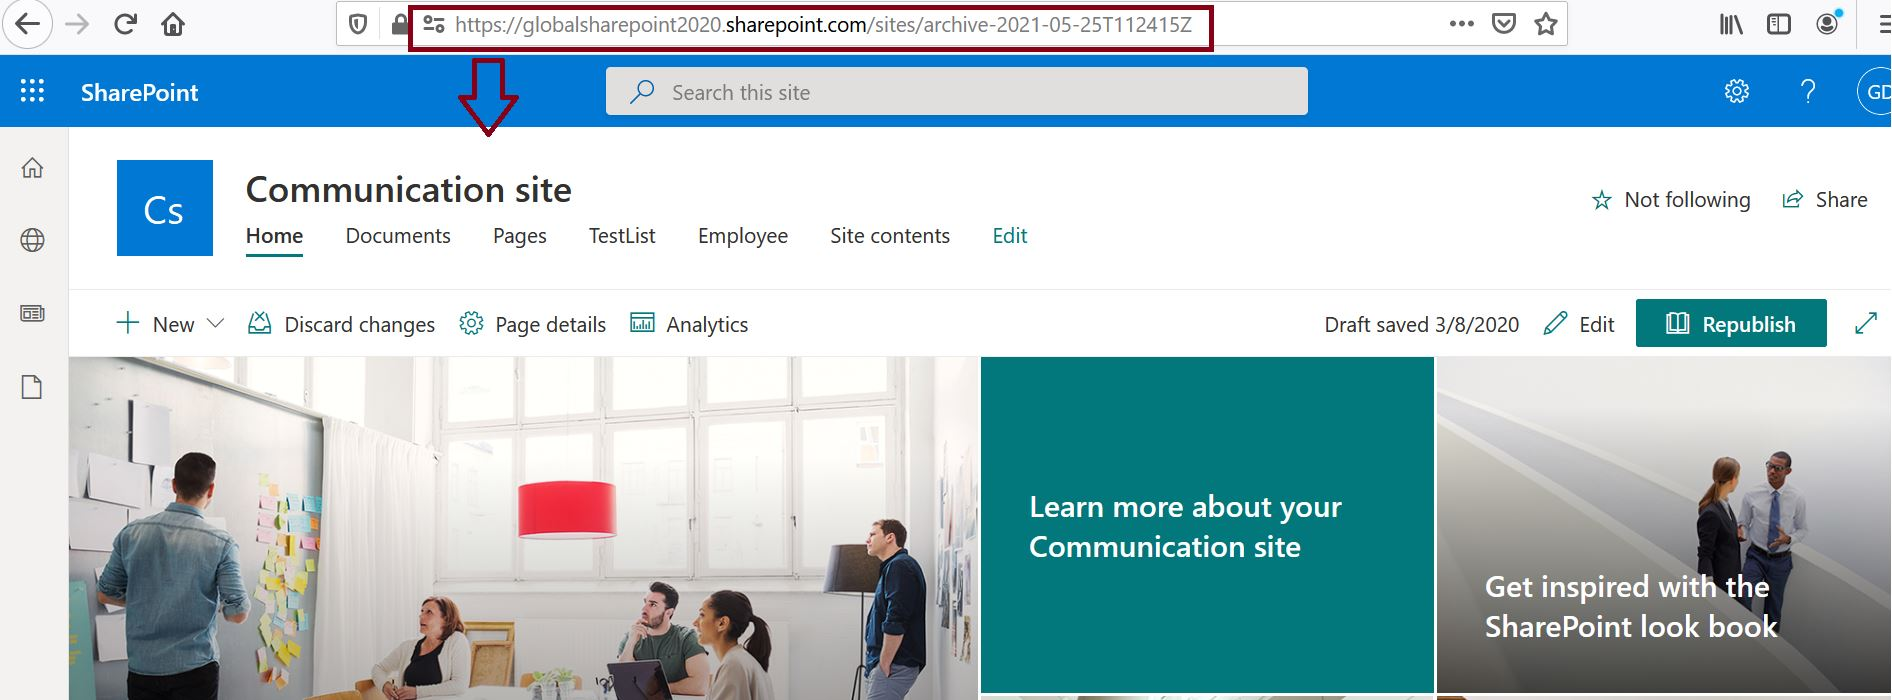 SharePoint Online tenant root site has been archived after swapping